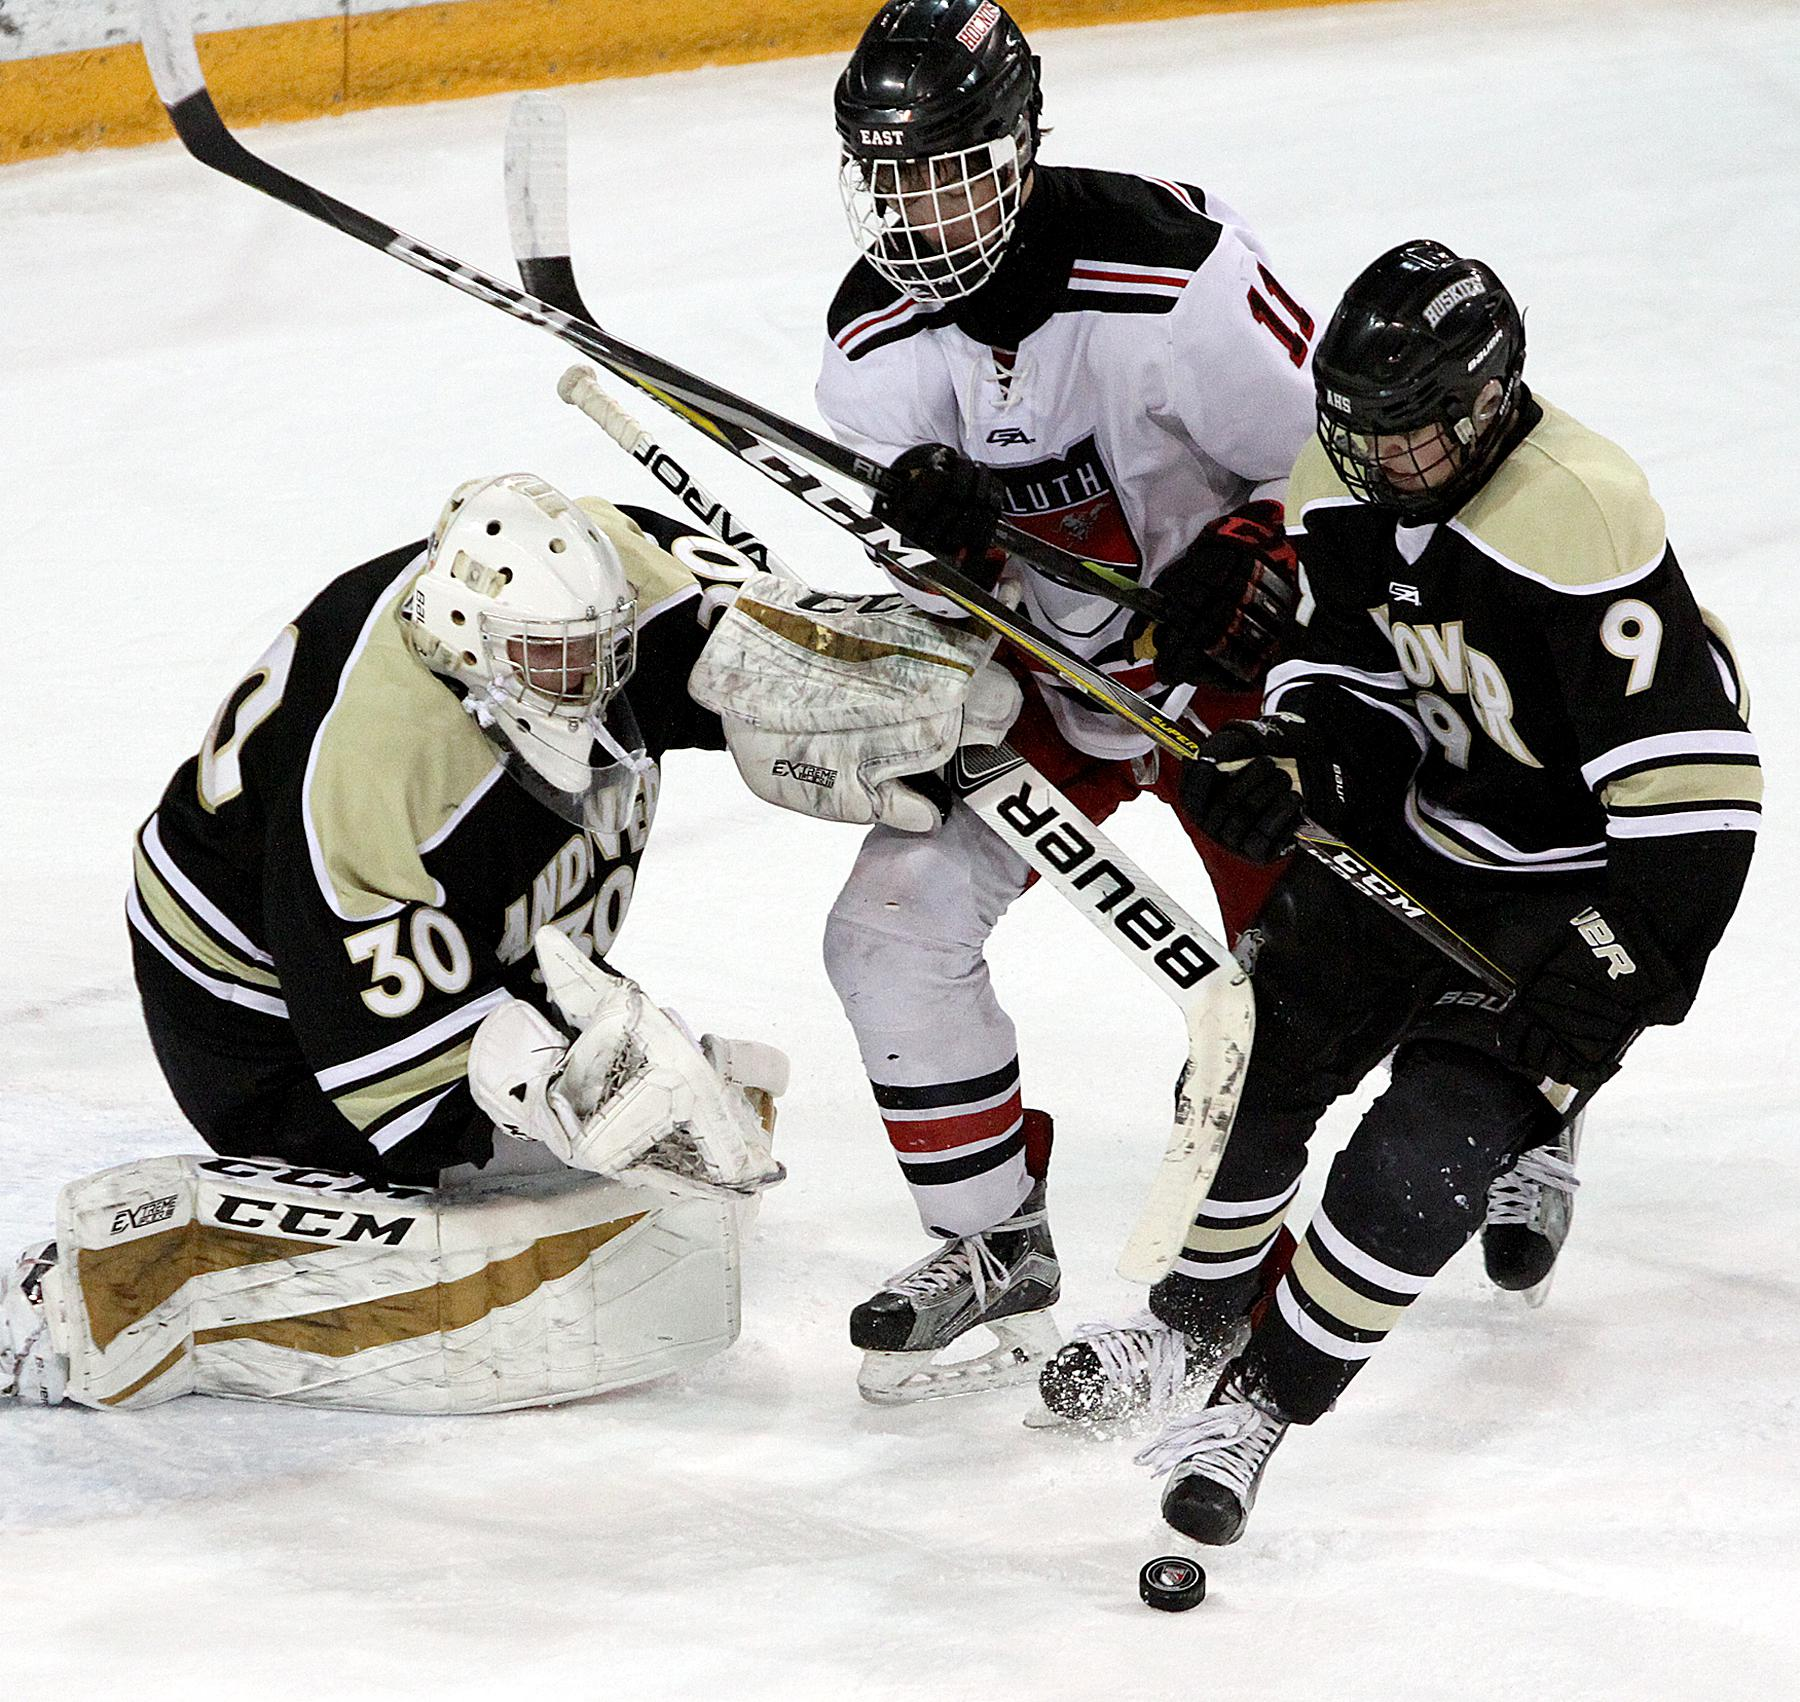 Duluth East's Nick Lanigan fights for a rebound between Andover goalie Ben Fritsinger and defenseman Eric Chartier late in the first period Thursday at AMSOIL Arena in Duluth. Photo by Drew Herron, SportsEngine